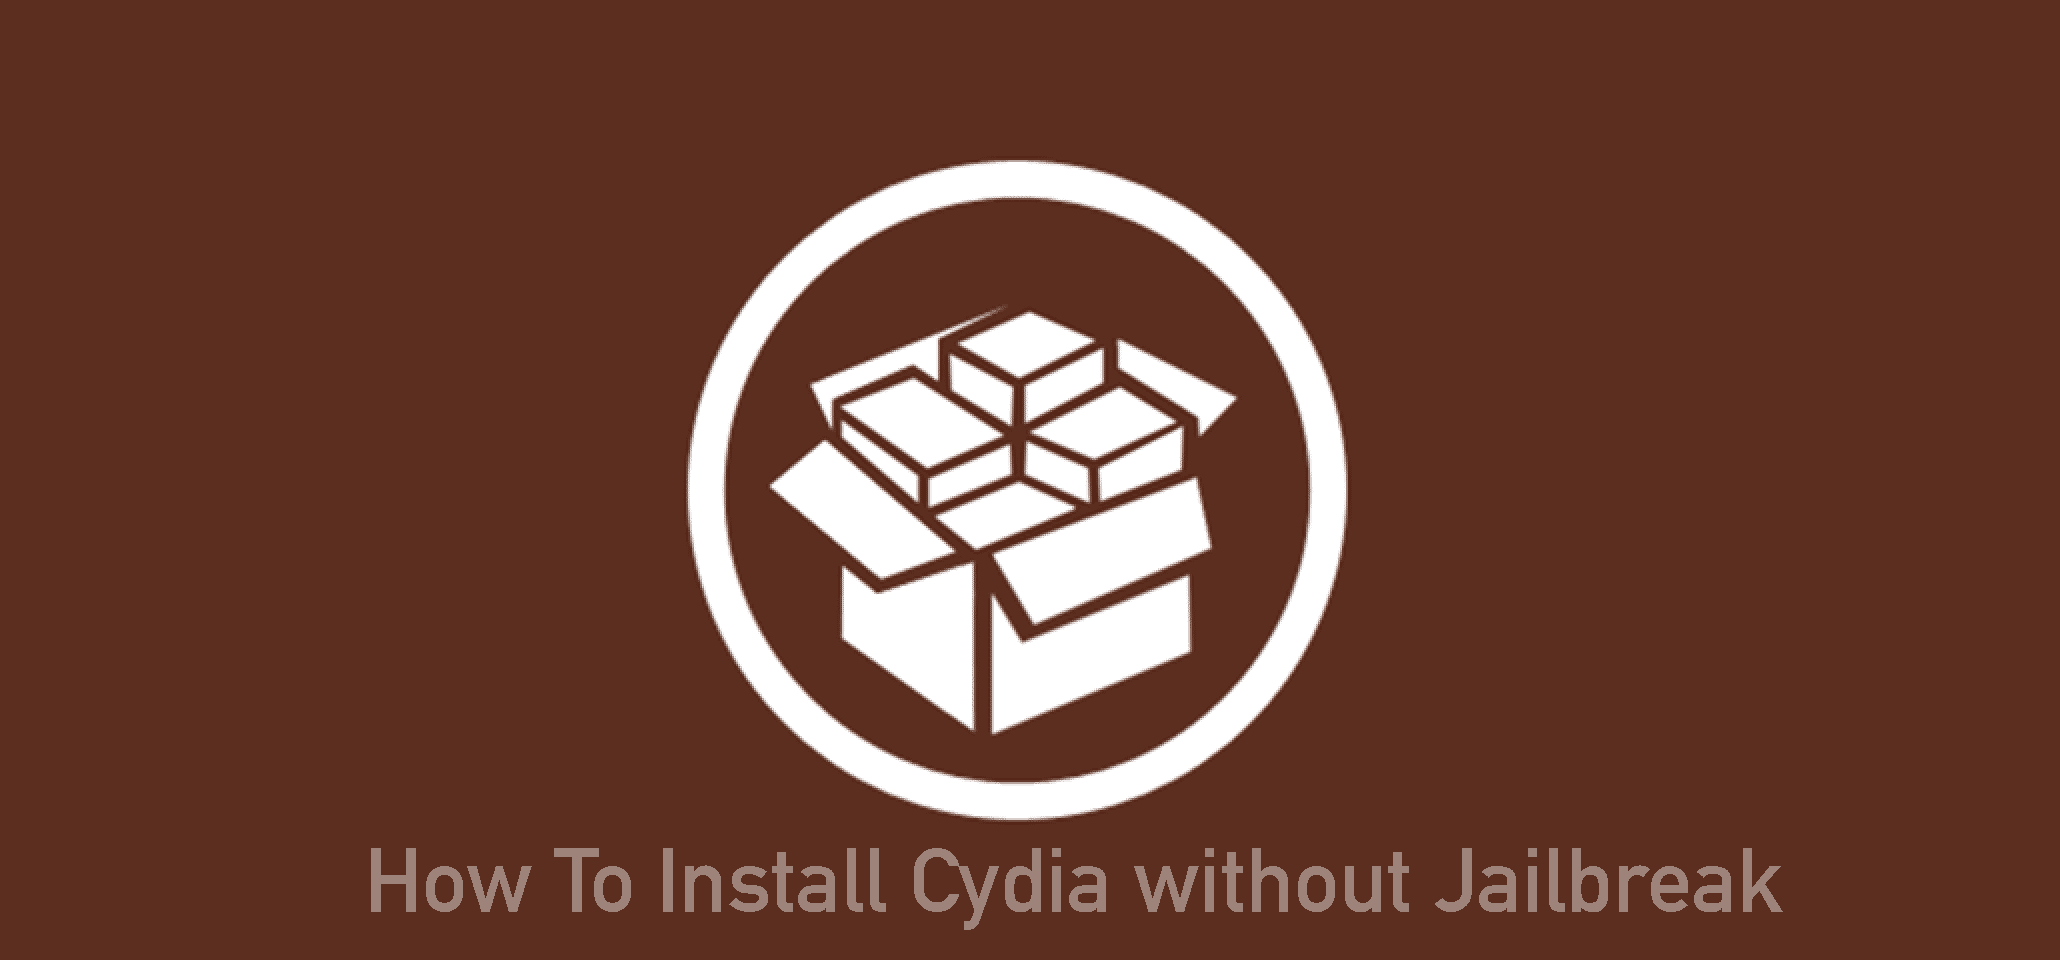 how to install cydia without jailbreak 2017